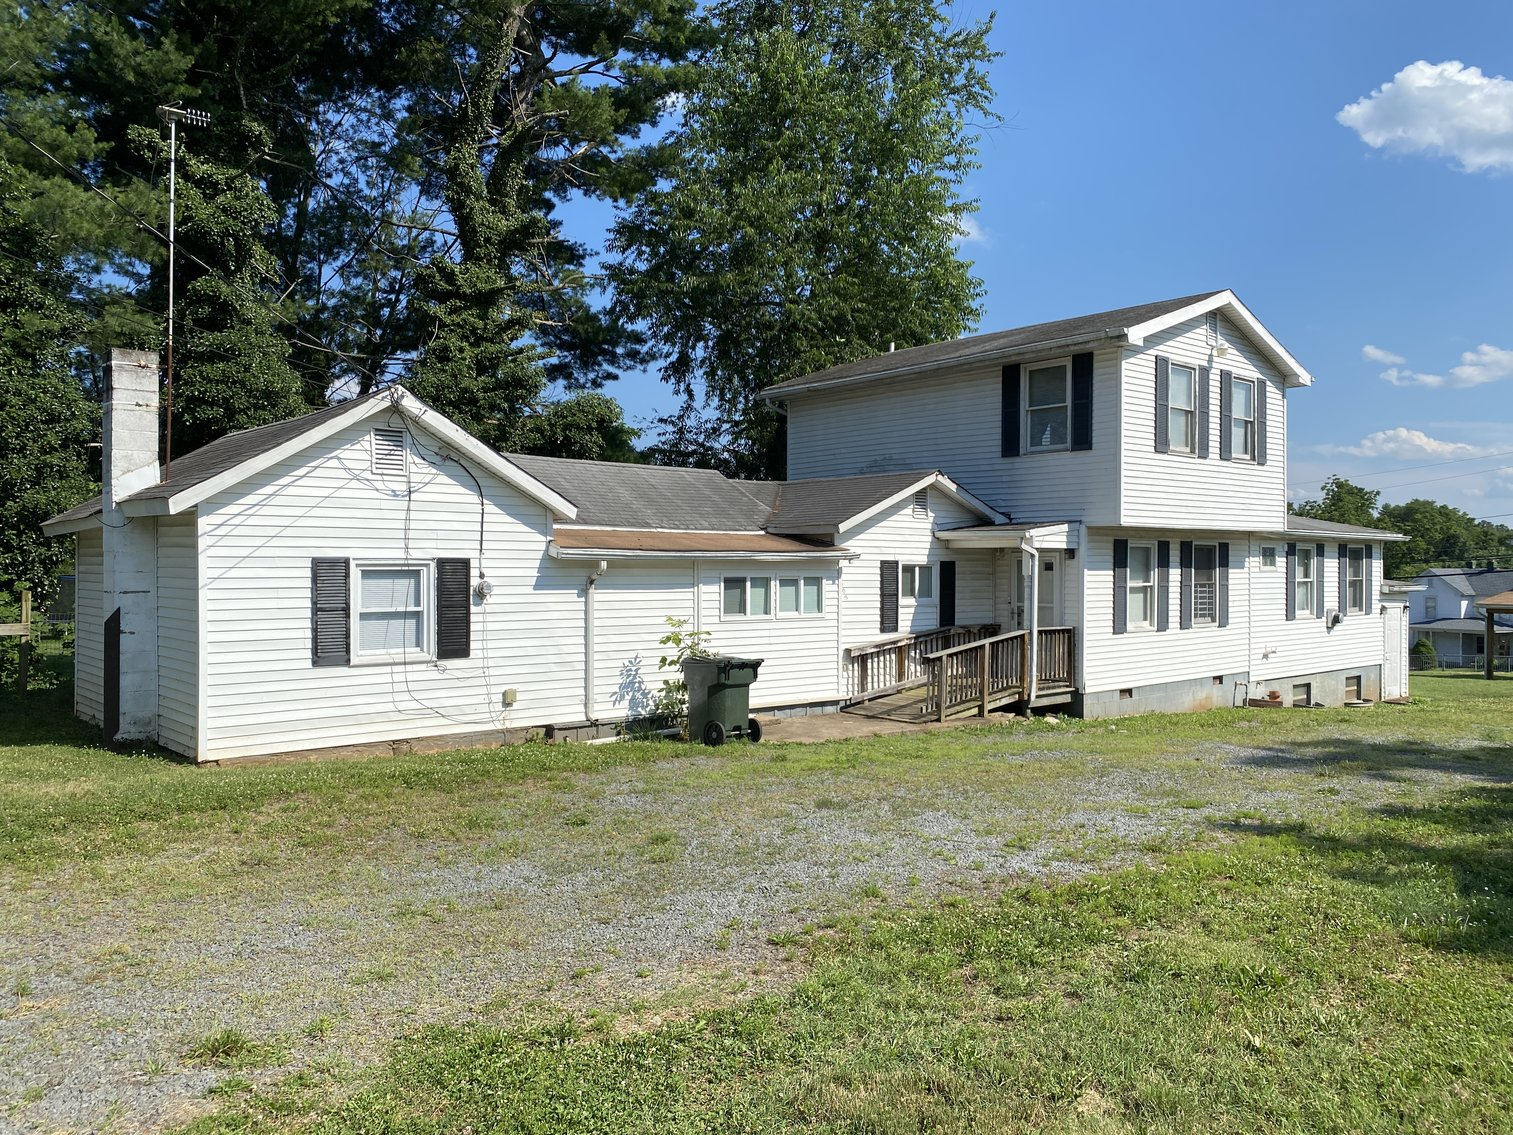 Image for 3 Investment Homes on .5 Acres Only 1/2 Mile from Main St. in Culpeper, VA--SELLS to the HIGHEST BIDDER!!